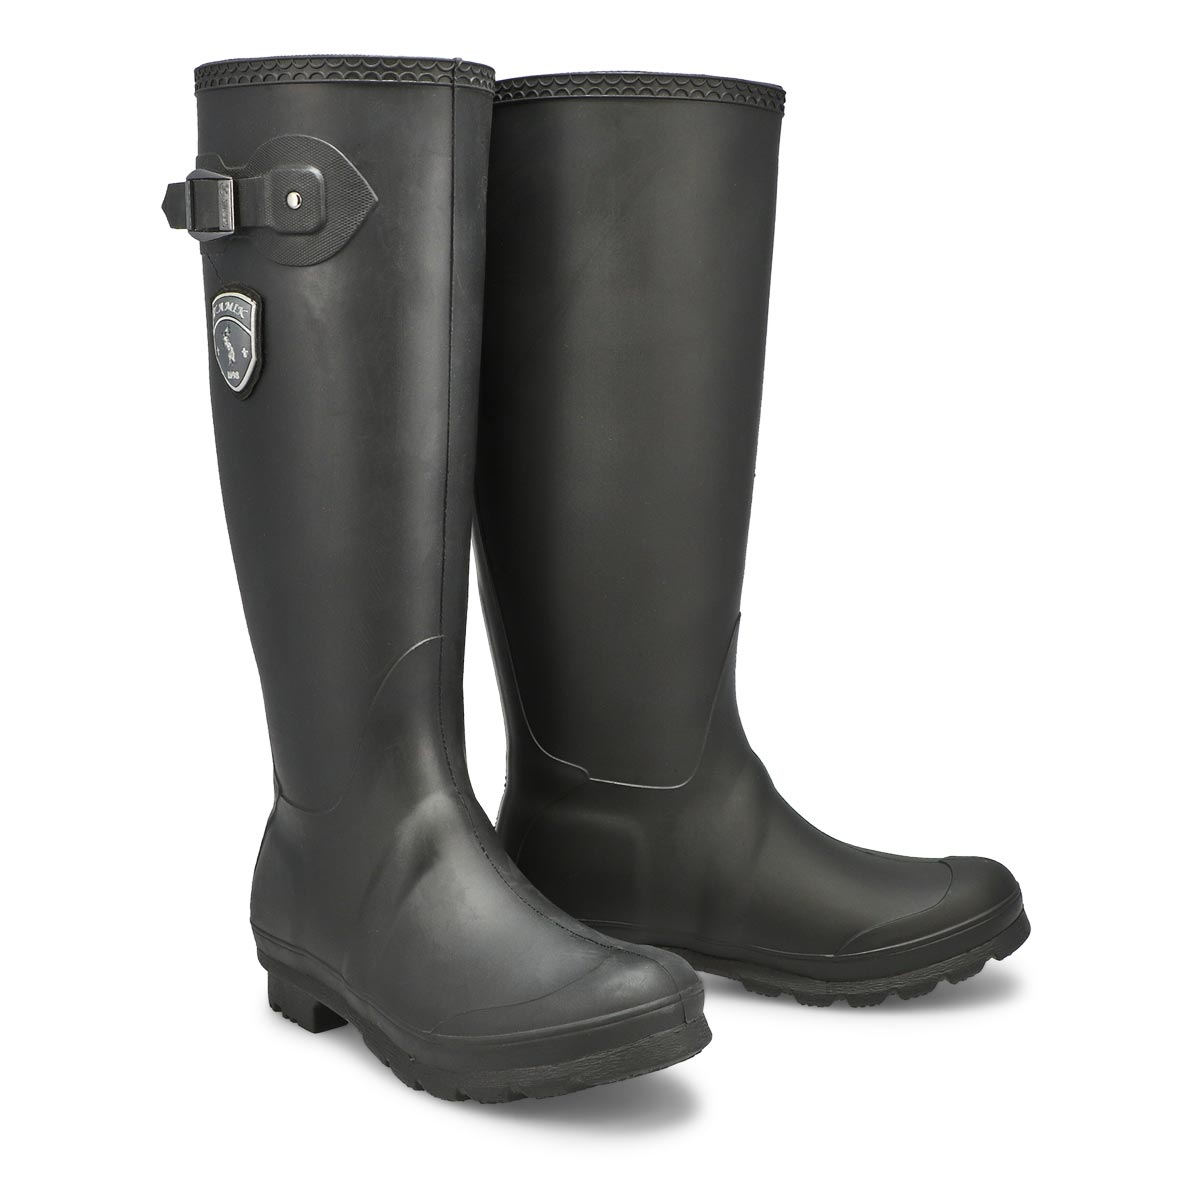 Lds Jennifer blk side buckle rain boot